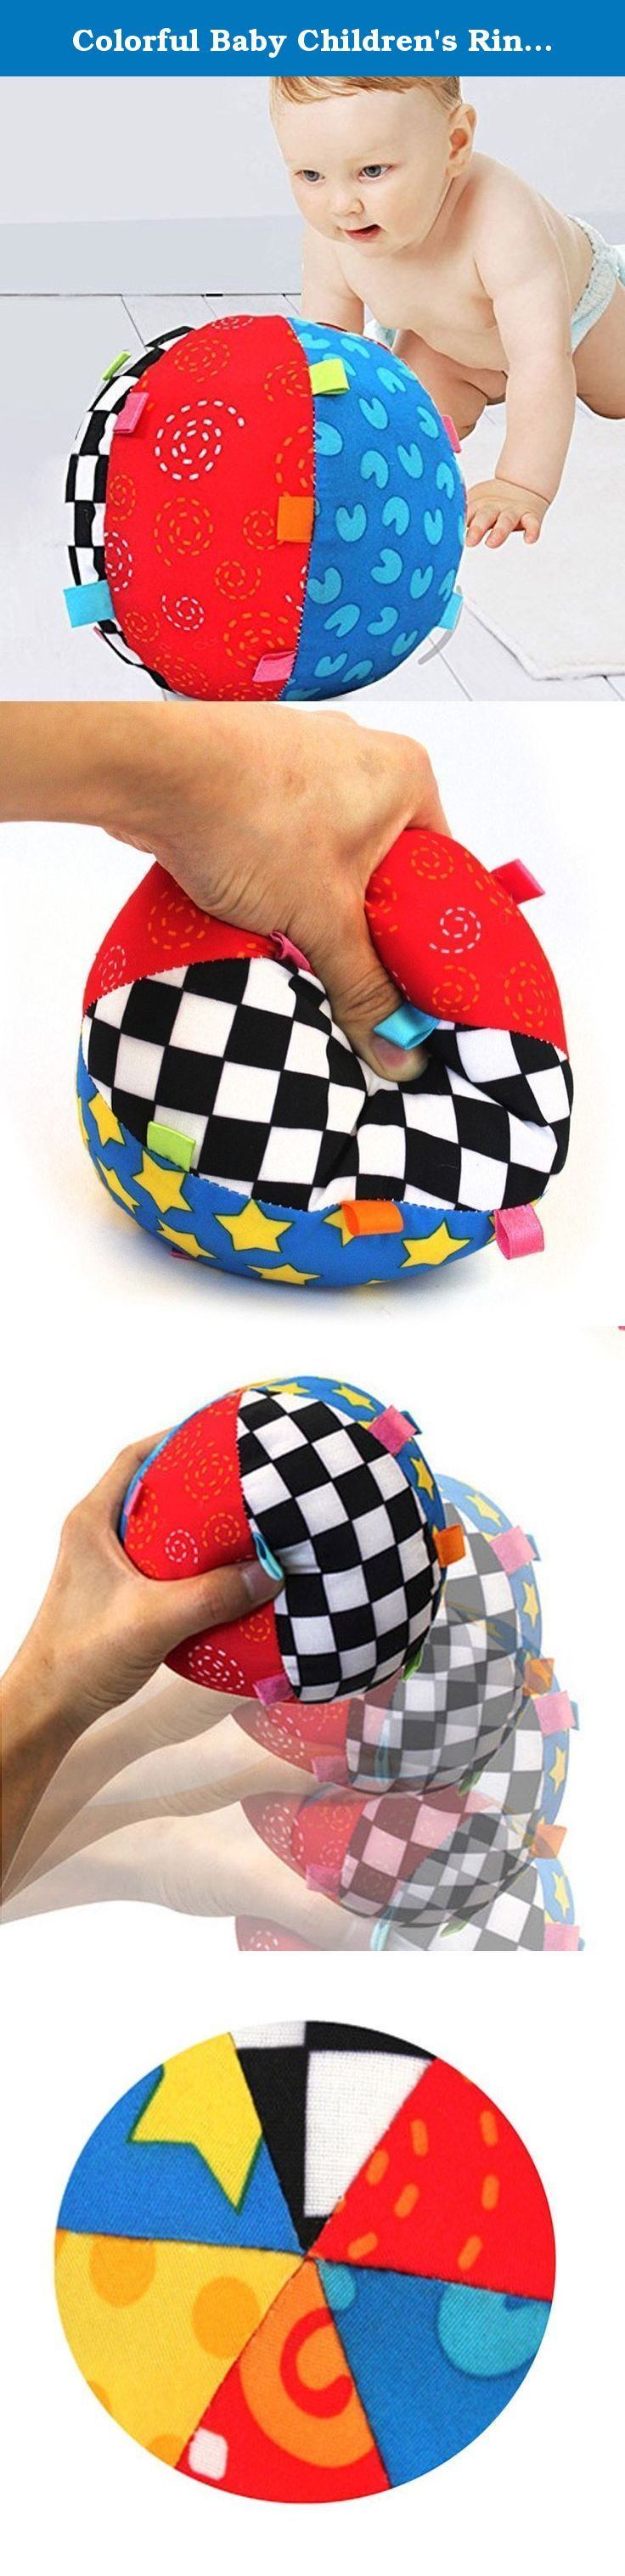 Colorful Baby Children's Ring Bell Ball Baby Toy Ball Educational Cotton Baby Hand Grasp Ball Cloth Music Sense Learning. Children's Ring Bell Ball Baby Toy Type: Hand Grasp Ball. Children's Ring Bell Ball Baby Toy Material: Cloth. Children's Ring Bell Ball Baby Toy Diameter: 15cm. Children's Ring Bell Ball Baby Toy Color: Multicolor. Children's Ring Bell Ball Baby Toy Age Range: > 3 years old,< 3 years old / Features: Musical,Soft.